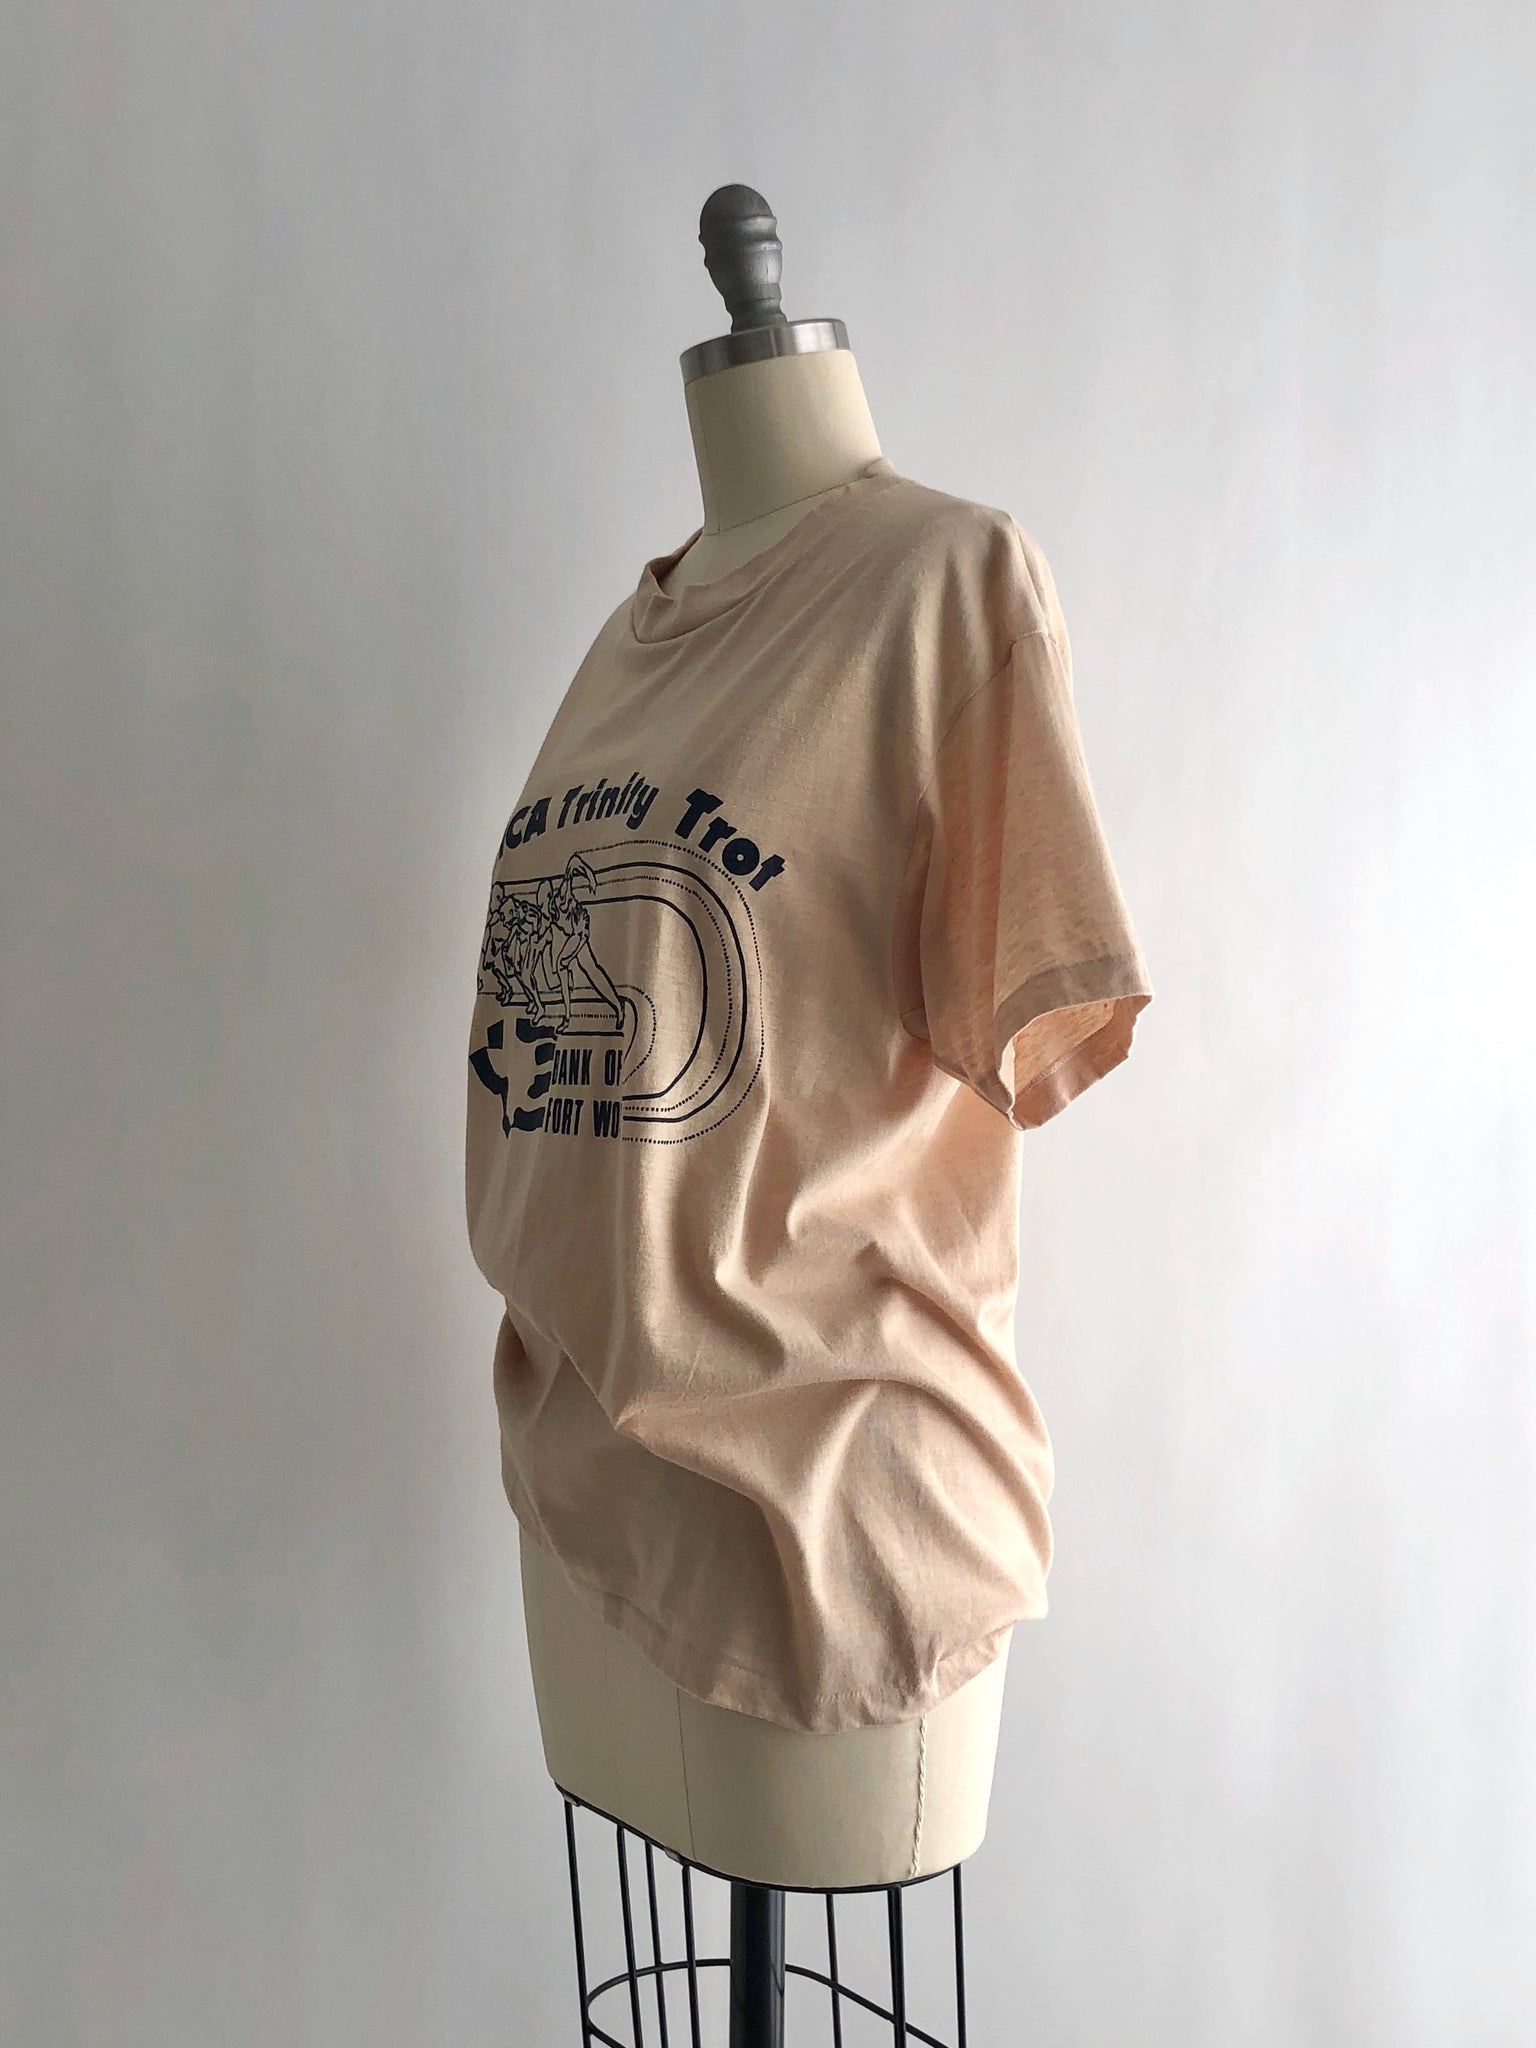 Vintage 80s Beige YMCA Trinity Trot Cotton Blend T-Shirt by Hanes Fifty-Fifty Combed